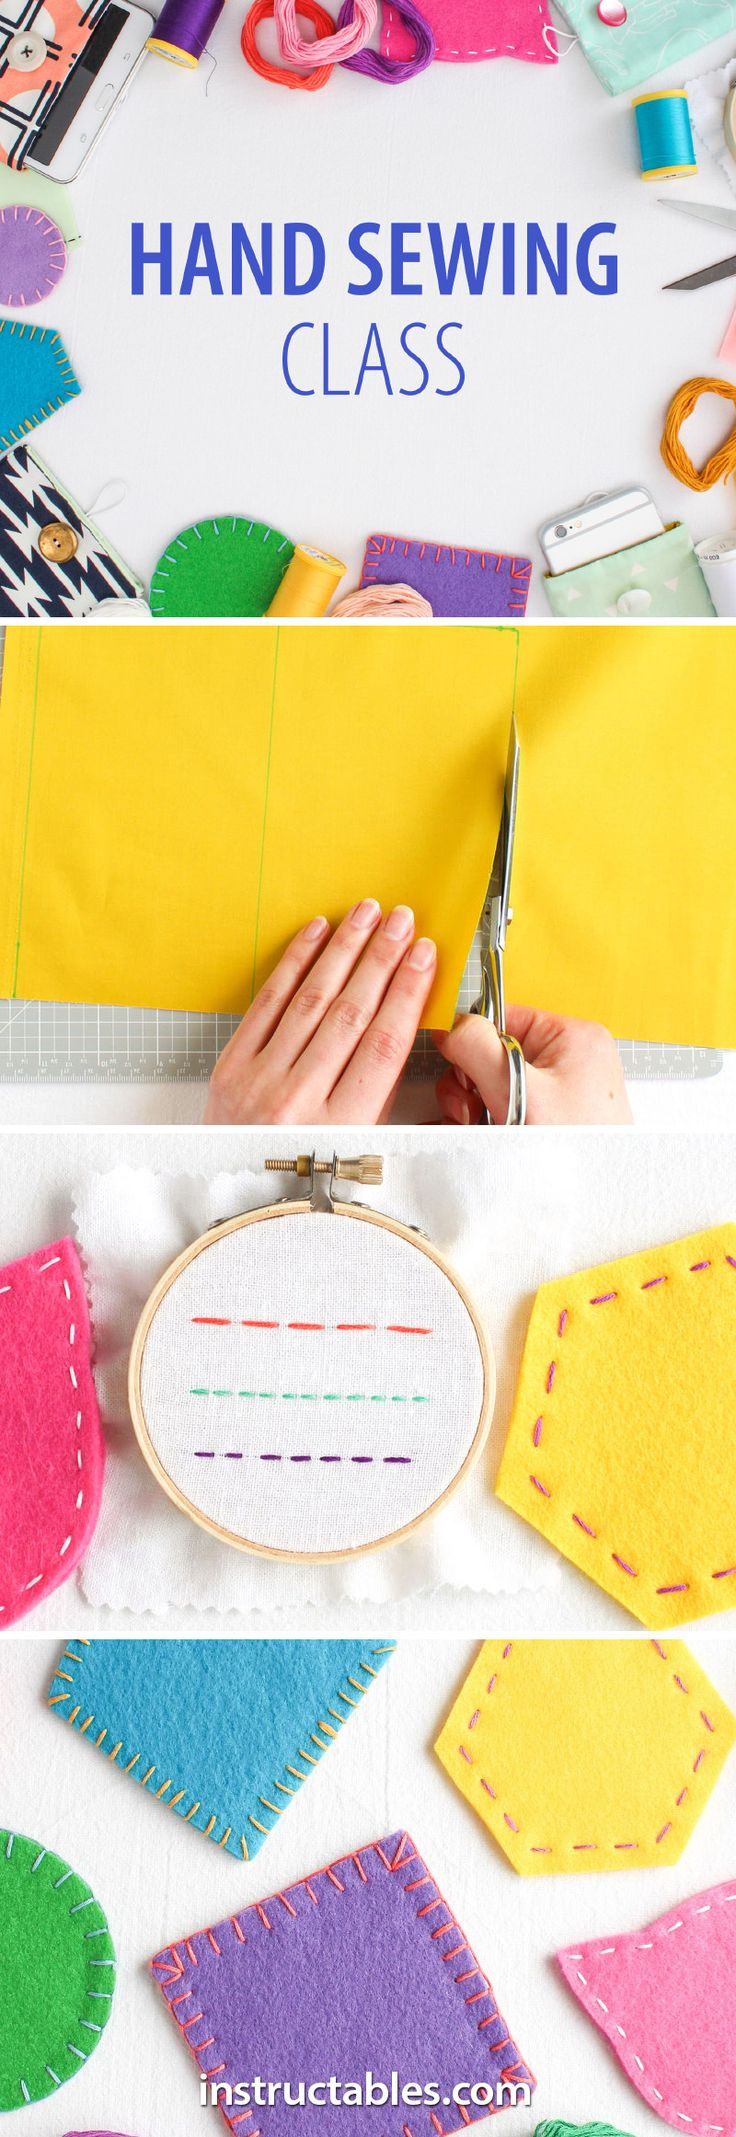 Hand sewing is the best way to mend and do repairs. Even if you sew primarily on a machine, being able to sew well by hand will allow you to finish every project you make in the cleanest, most professional-looking way.